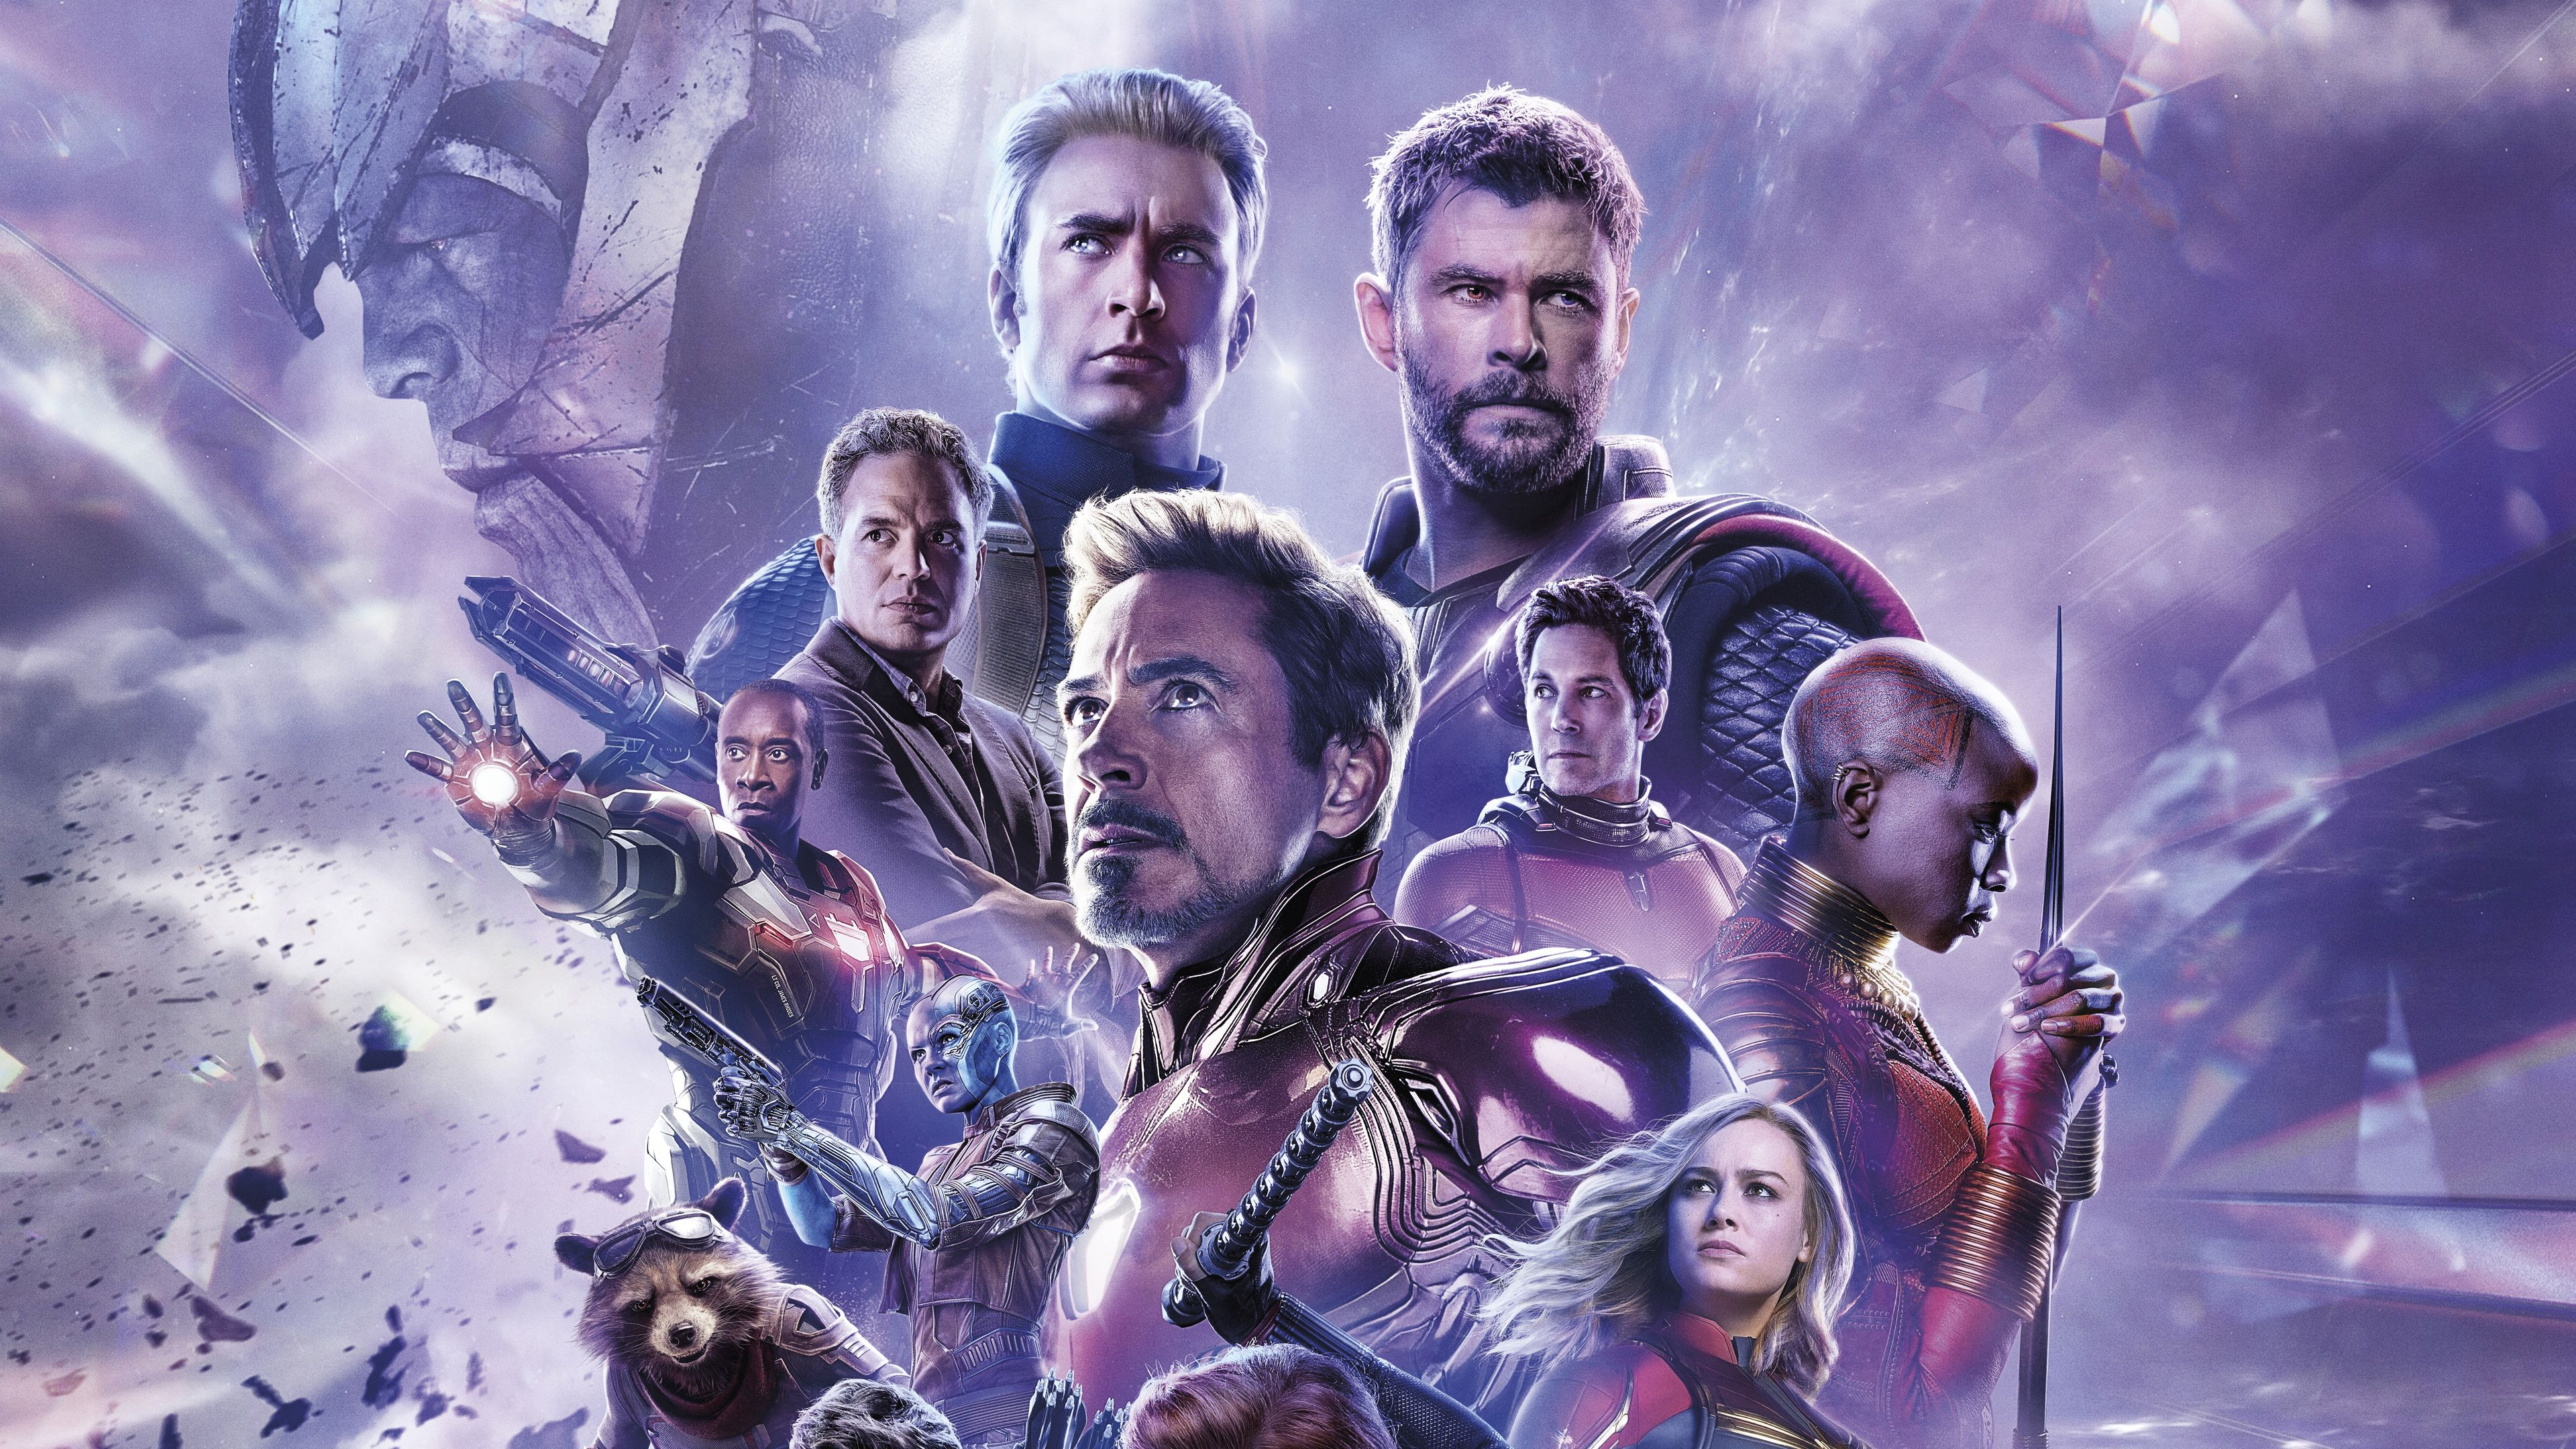 Avengers Endgame 4k Poster Wallpapers Movies Wallpapers Hd Wallpapers Avengers Endgame Wallpapers 4k Wallpapers 20 Movie Wallpapers Avengers Marvel Movies